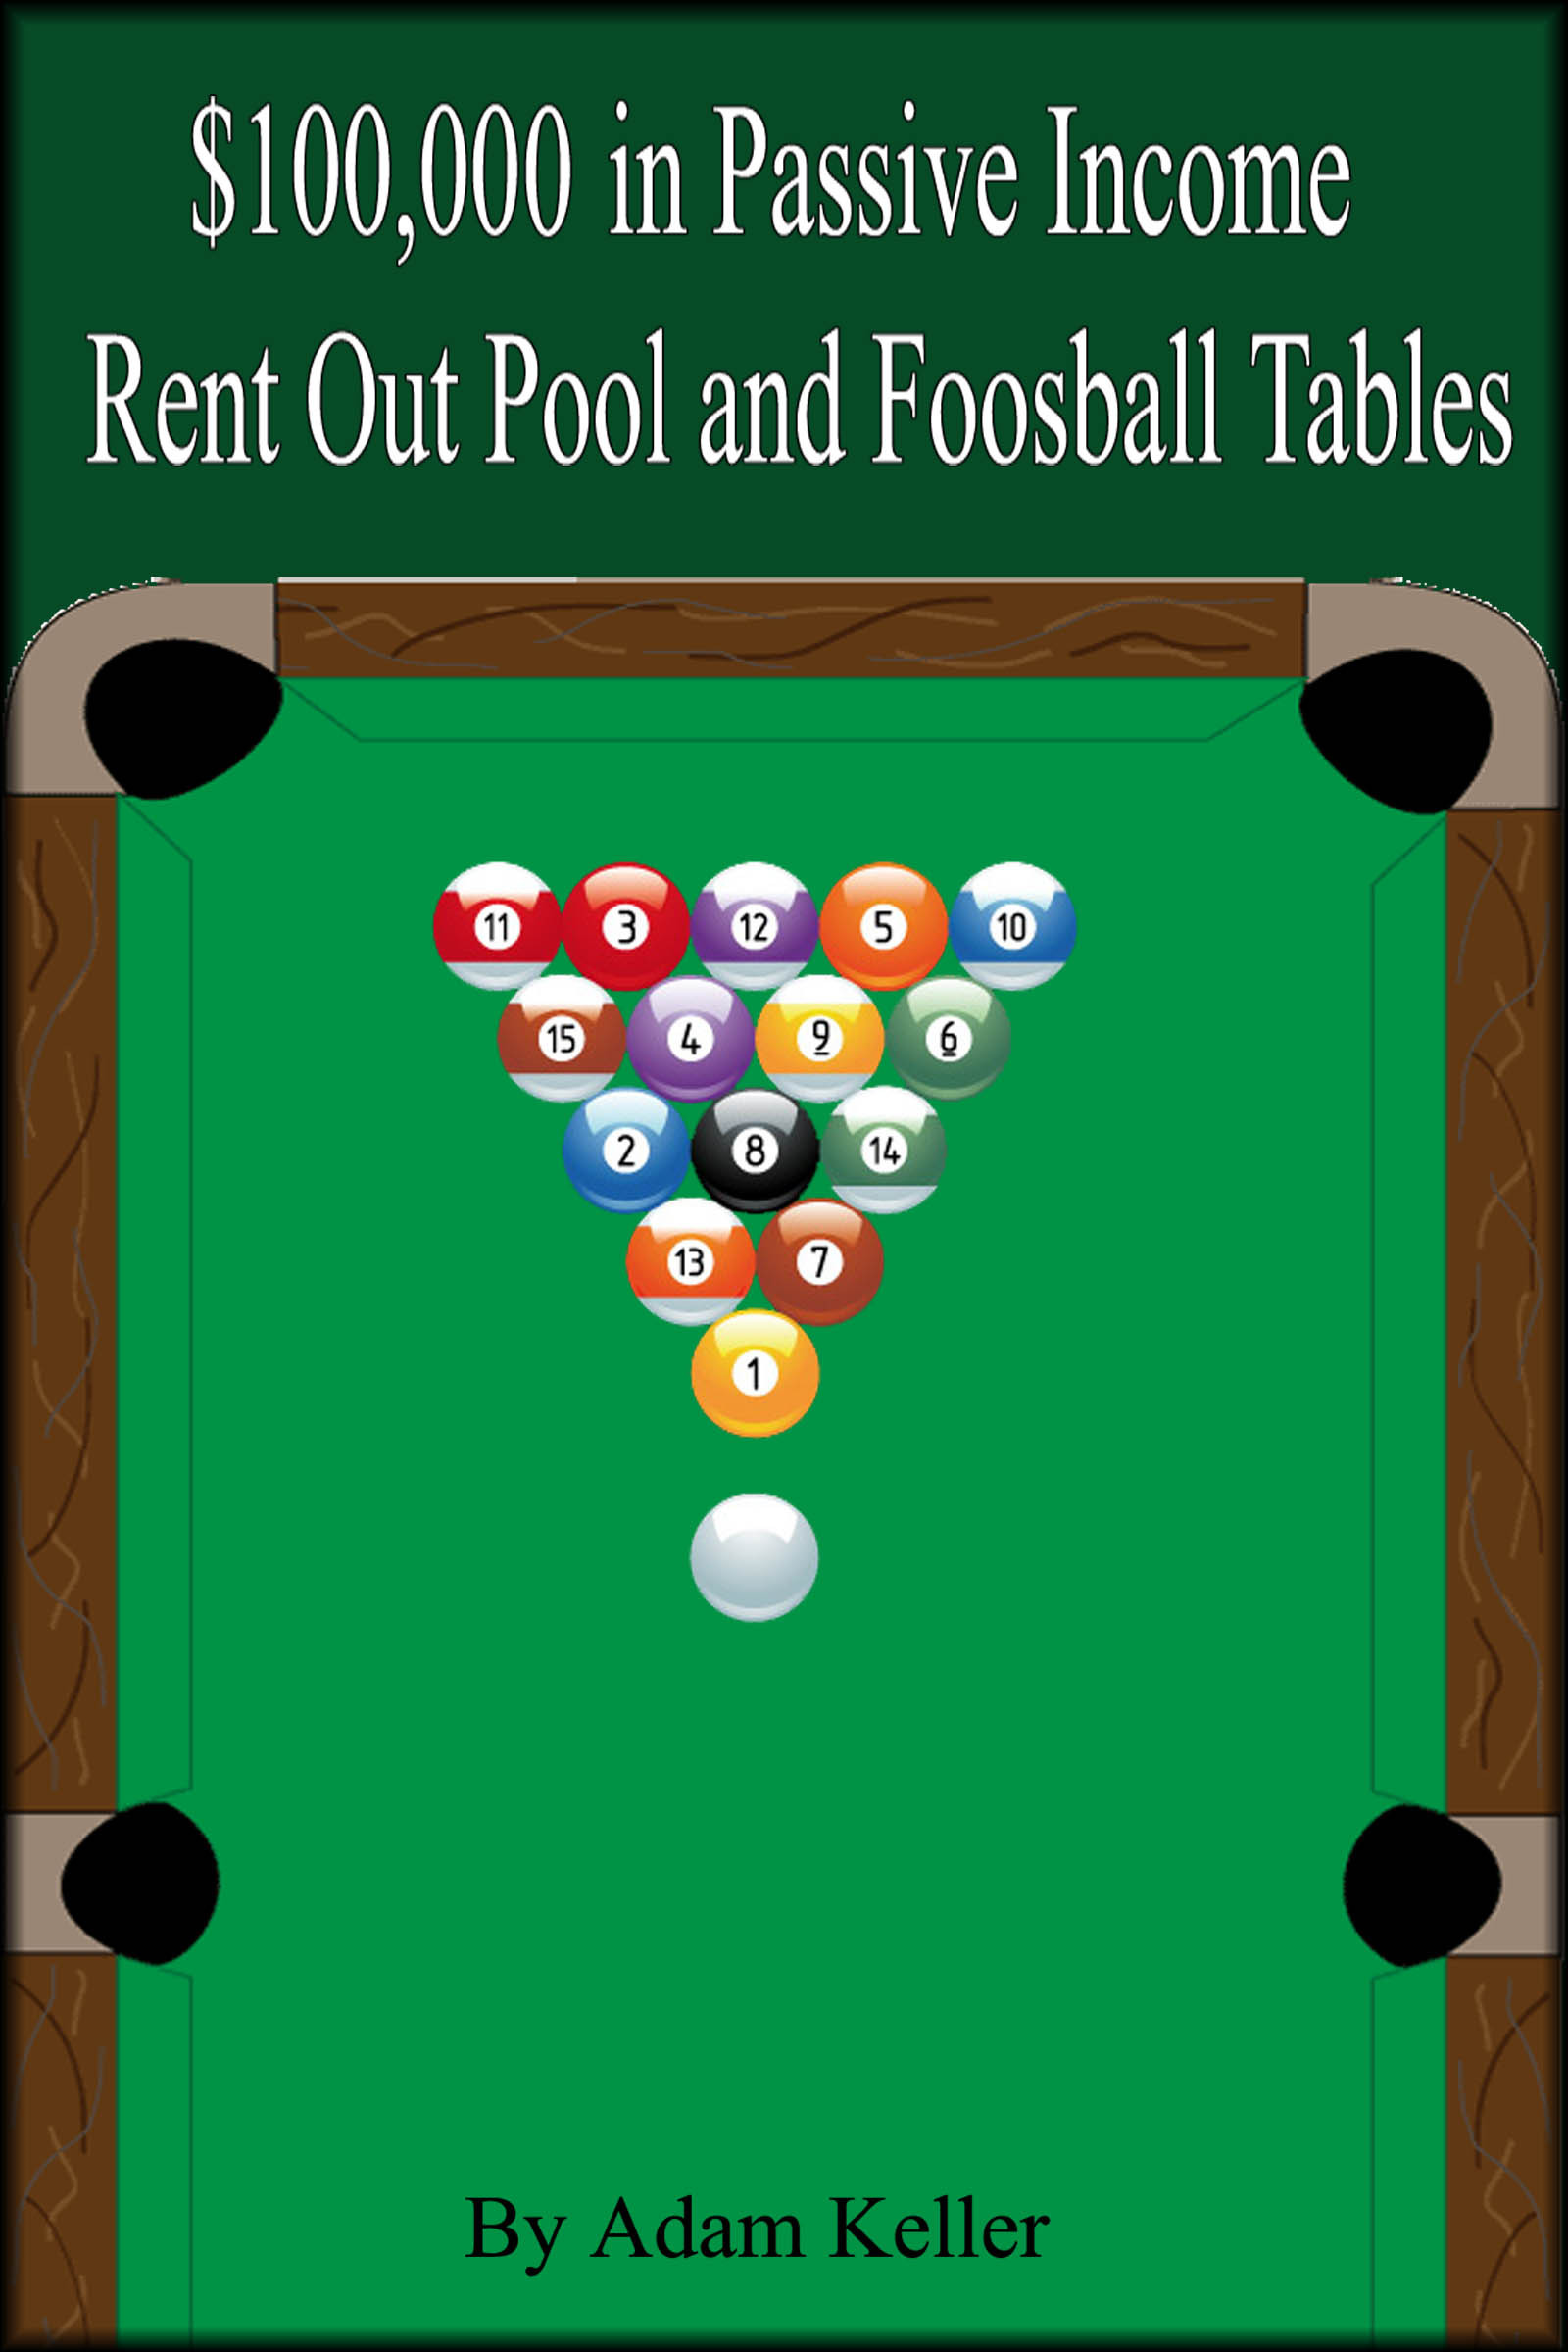 $100,000 in Passive Income: Rent Out Pool and Foosball Tables